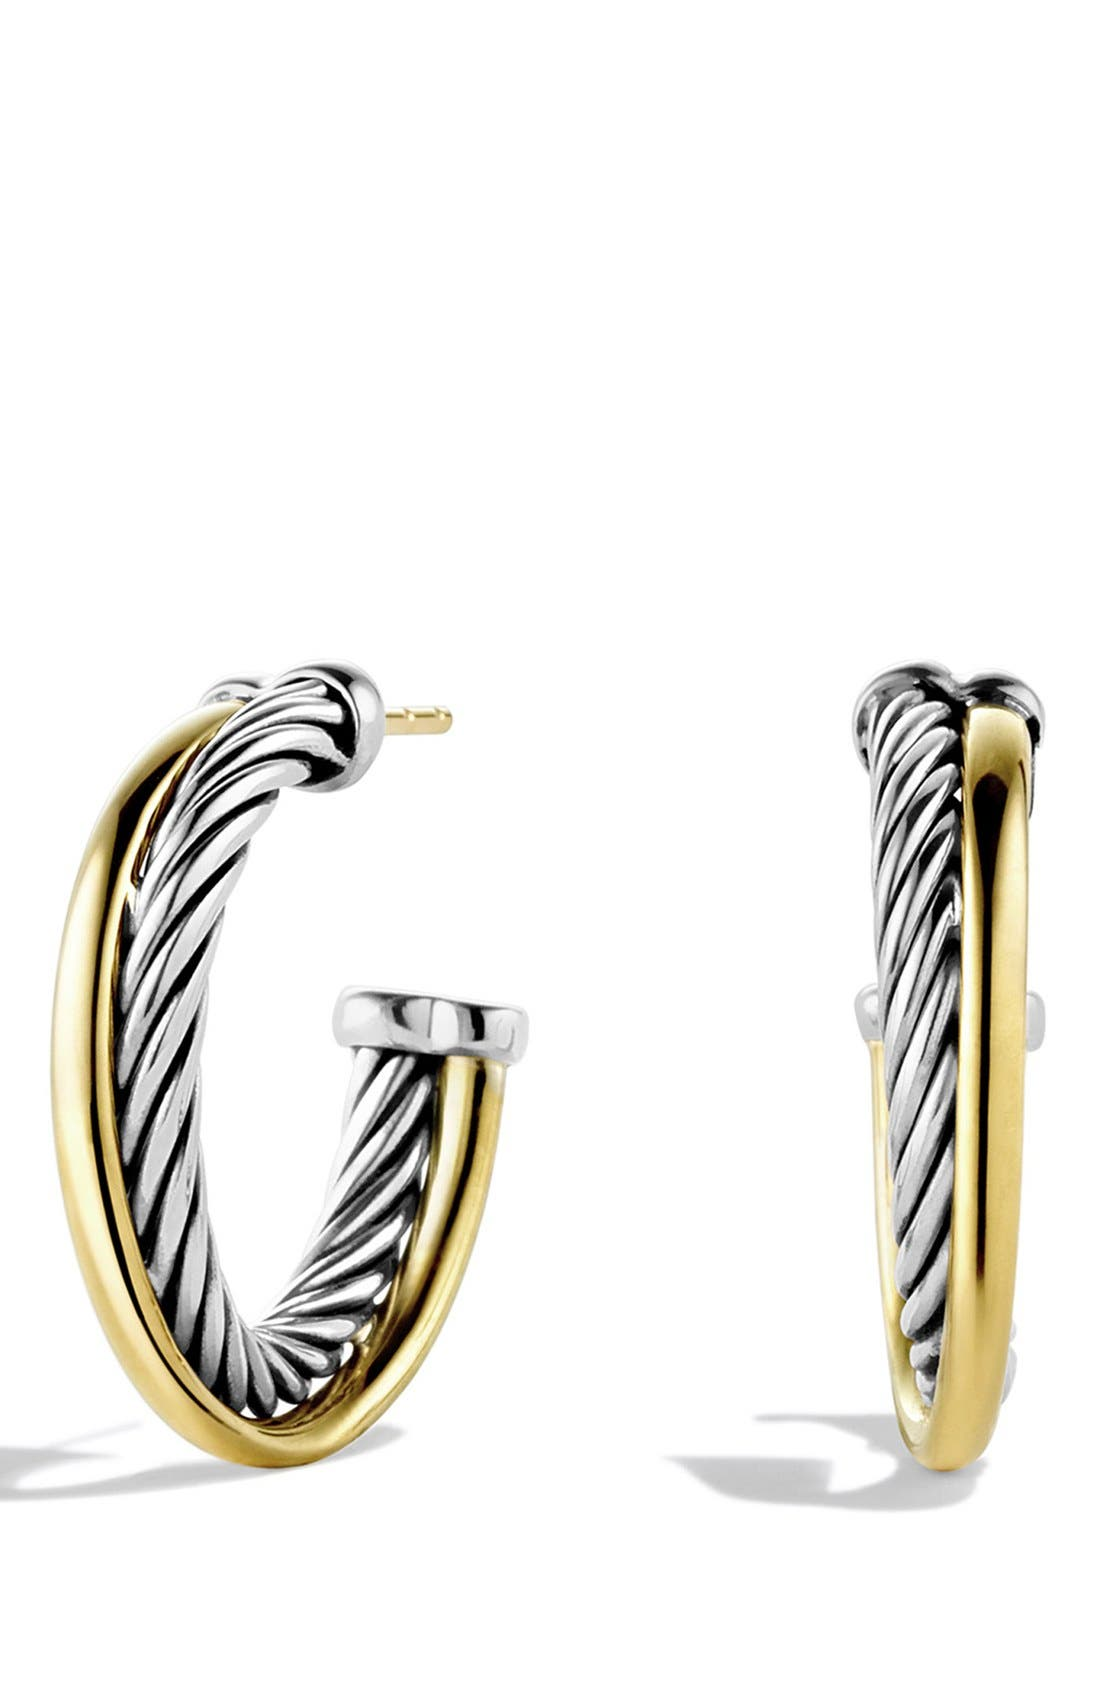 Alternate Image 1 Selected - David Yurman 'Crossover' Small Hoop Earrings with Gold